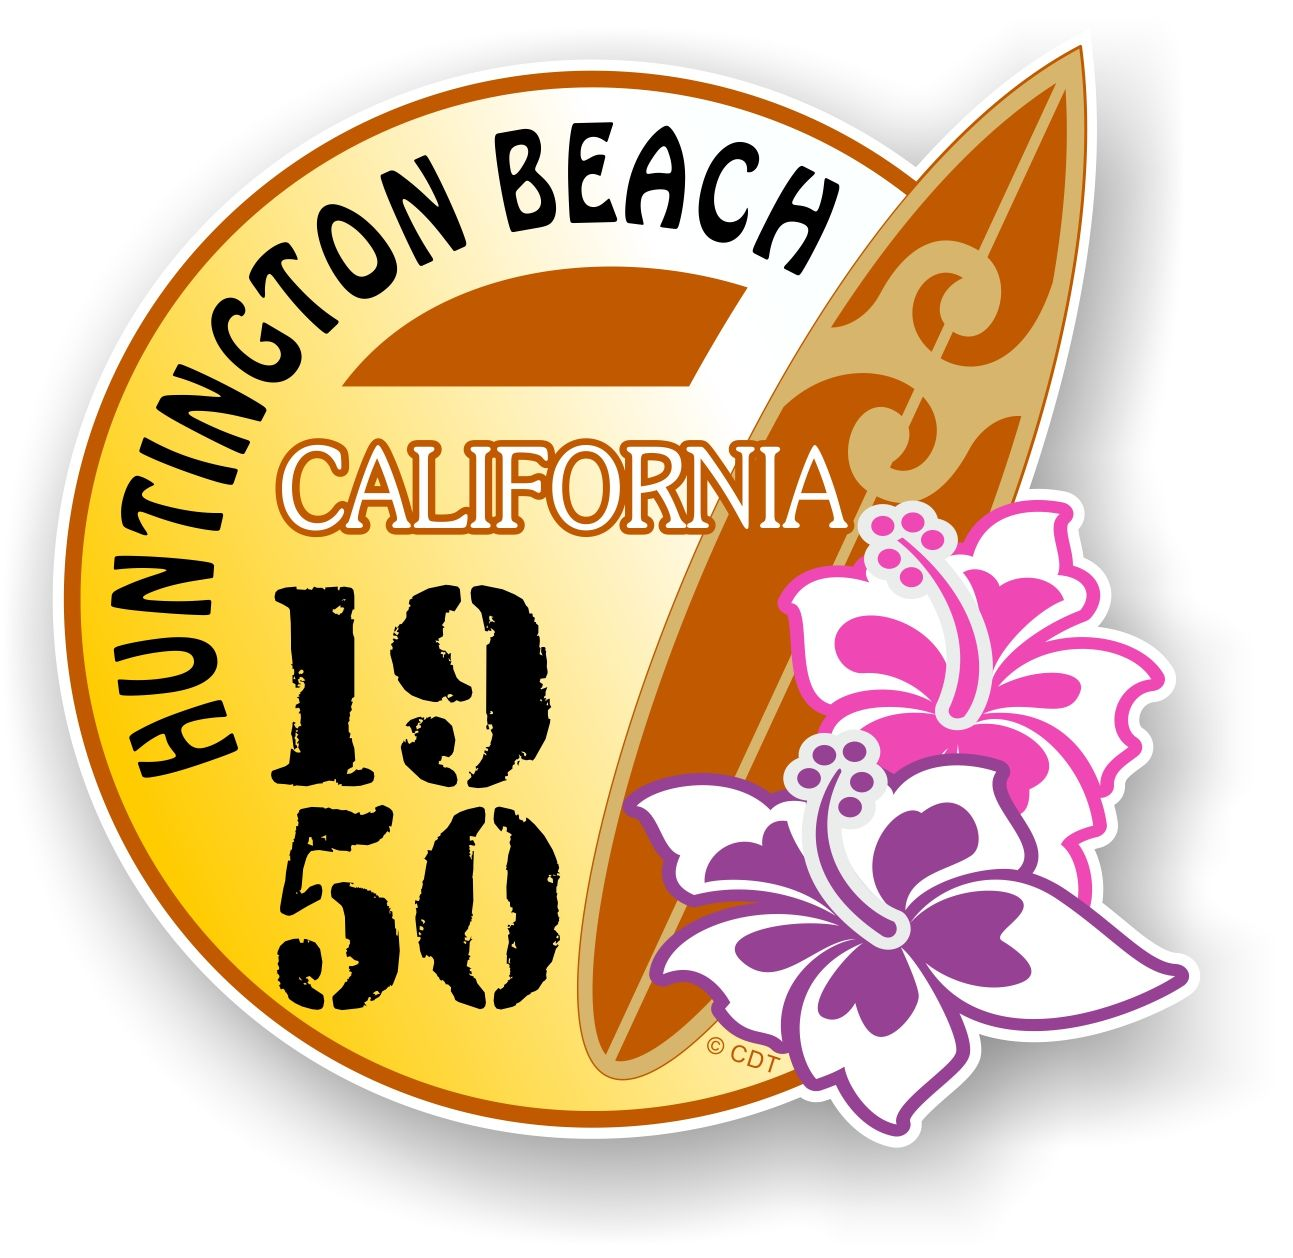 1950 surf clipart vector royalty free stock Huntington Beach 1950 Surfer Surfing Design Vinyl Car sticker decal 95x98mm vector royalty free stock